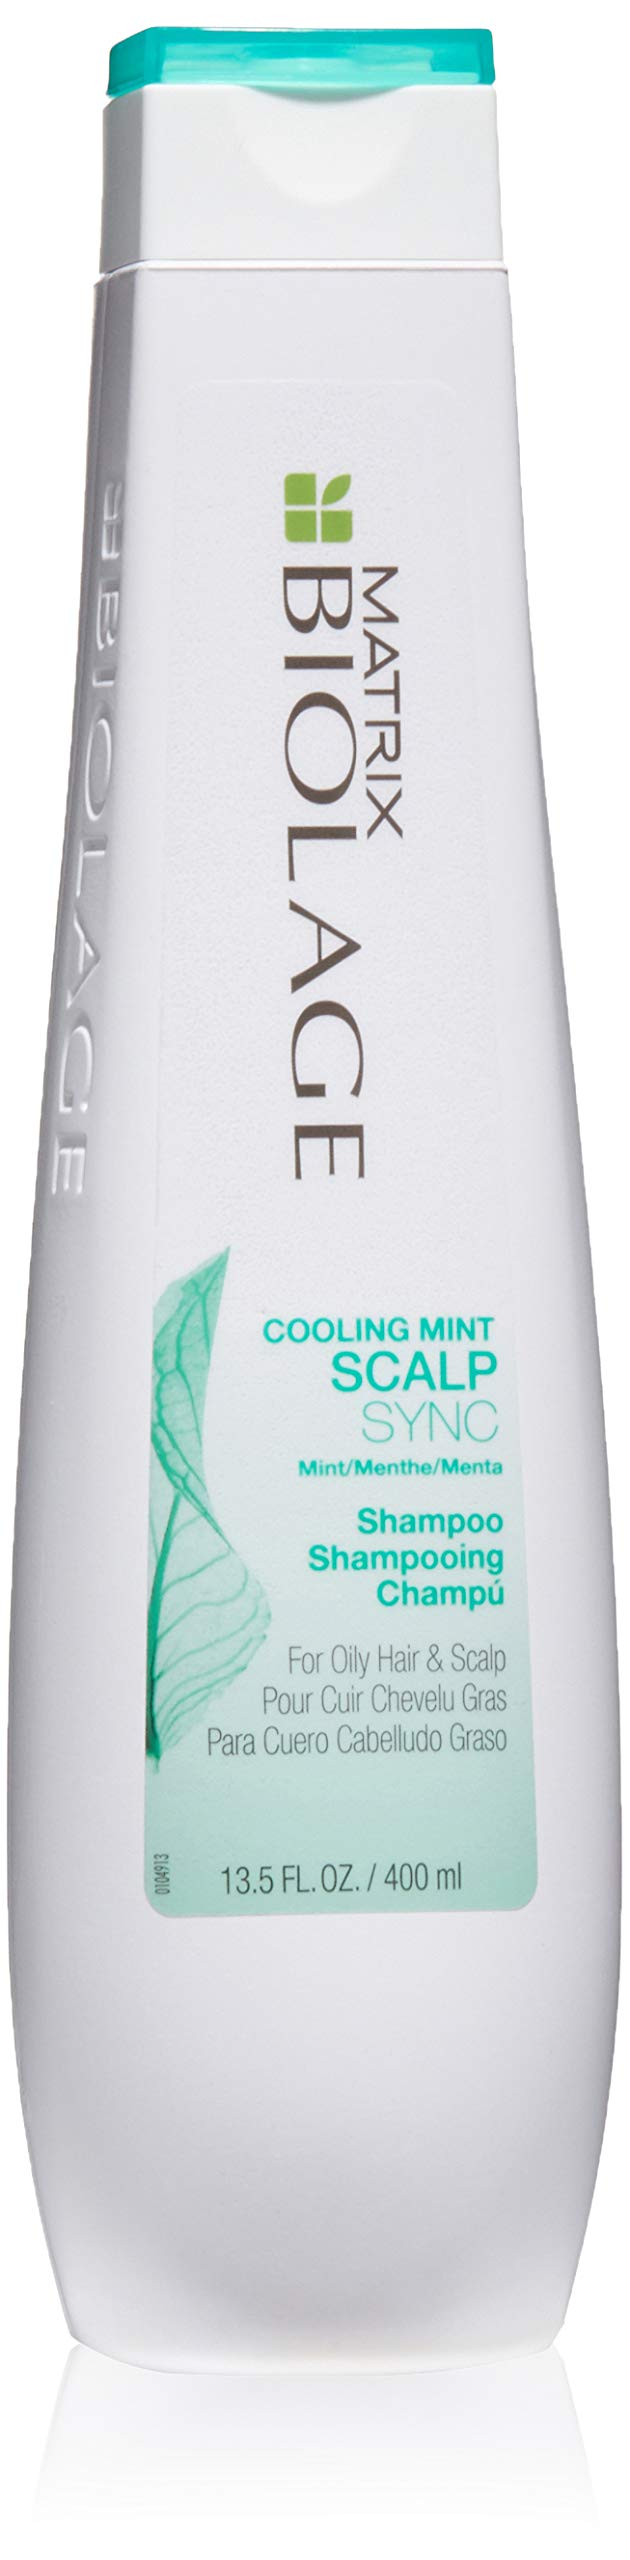 BIOLAGE Cooling Mint Scalpsync Shampoo | Cleanses Excess Oil From The Hair & Scalp | for Oily Hair & Scalp